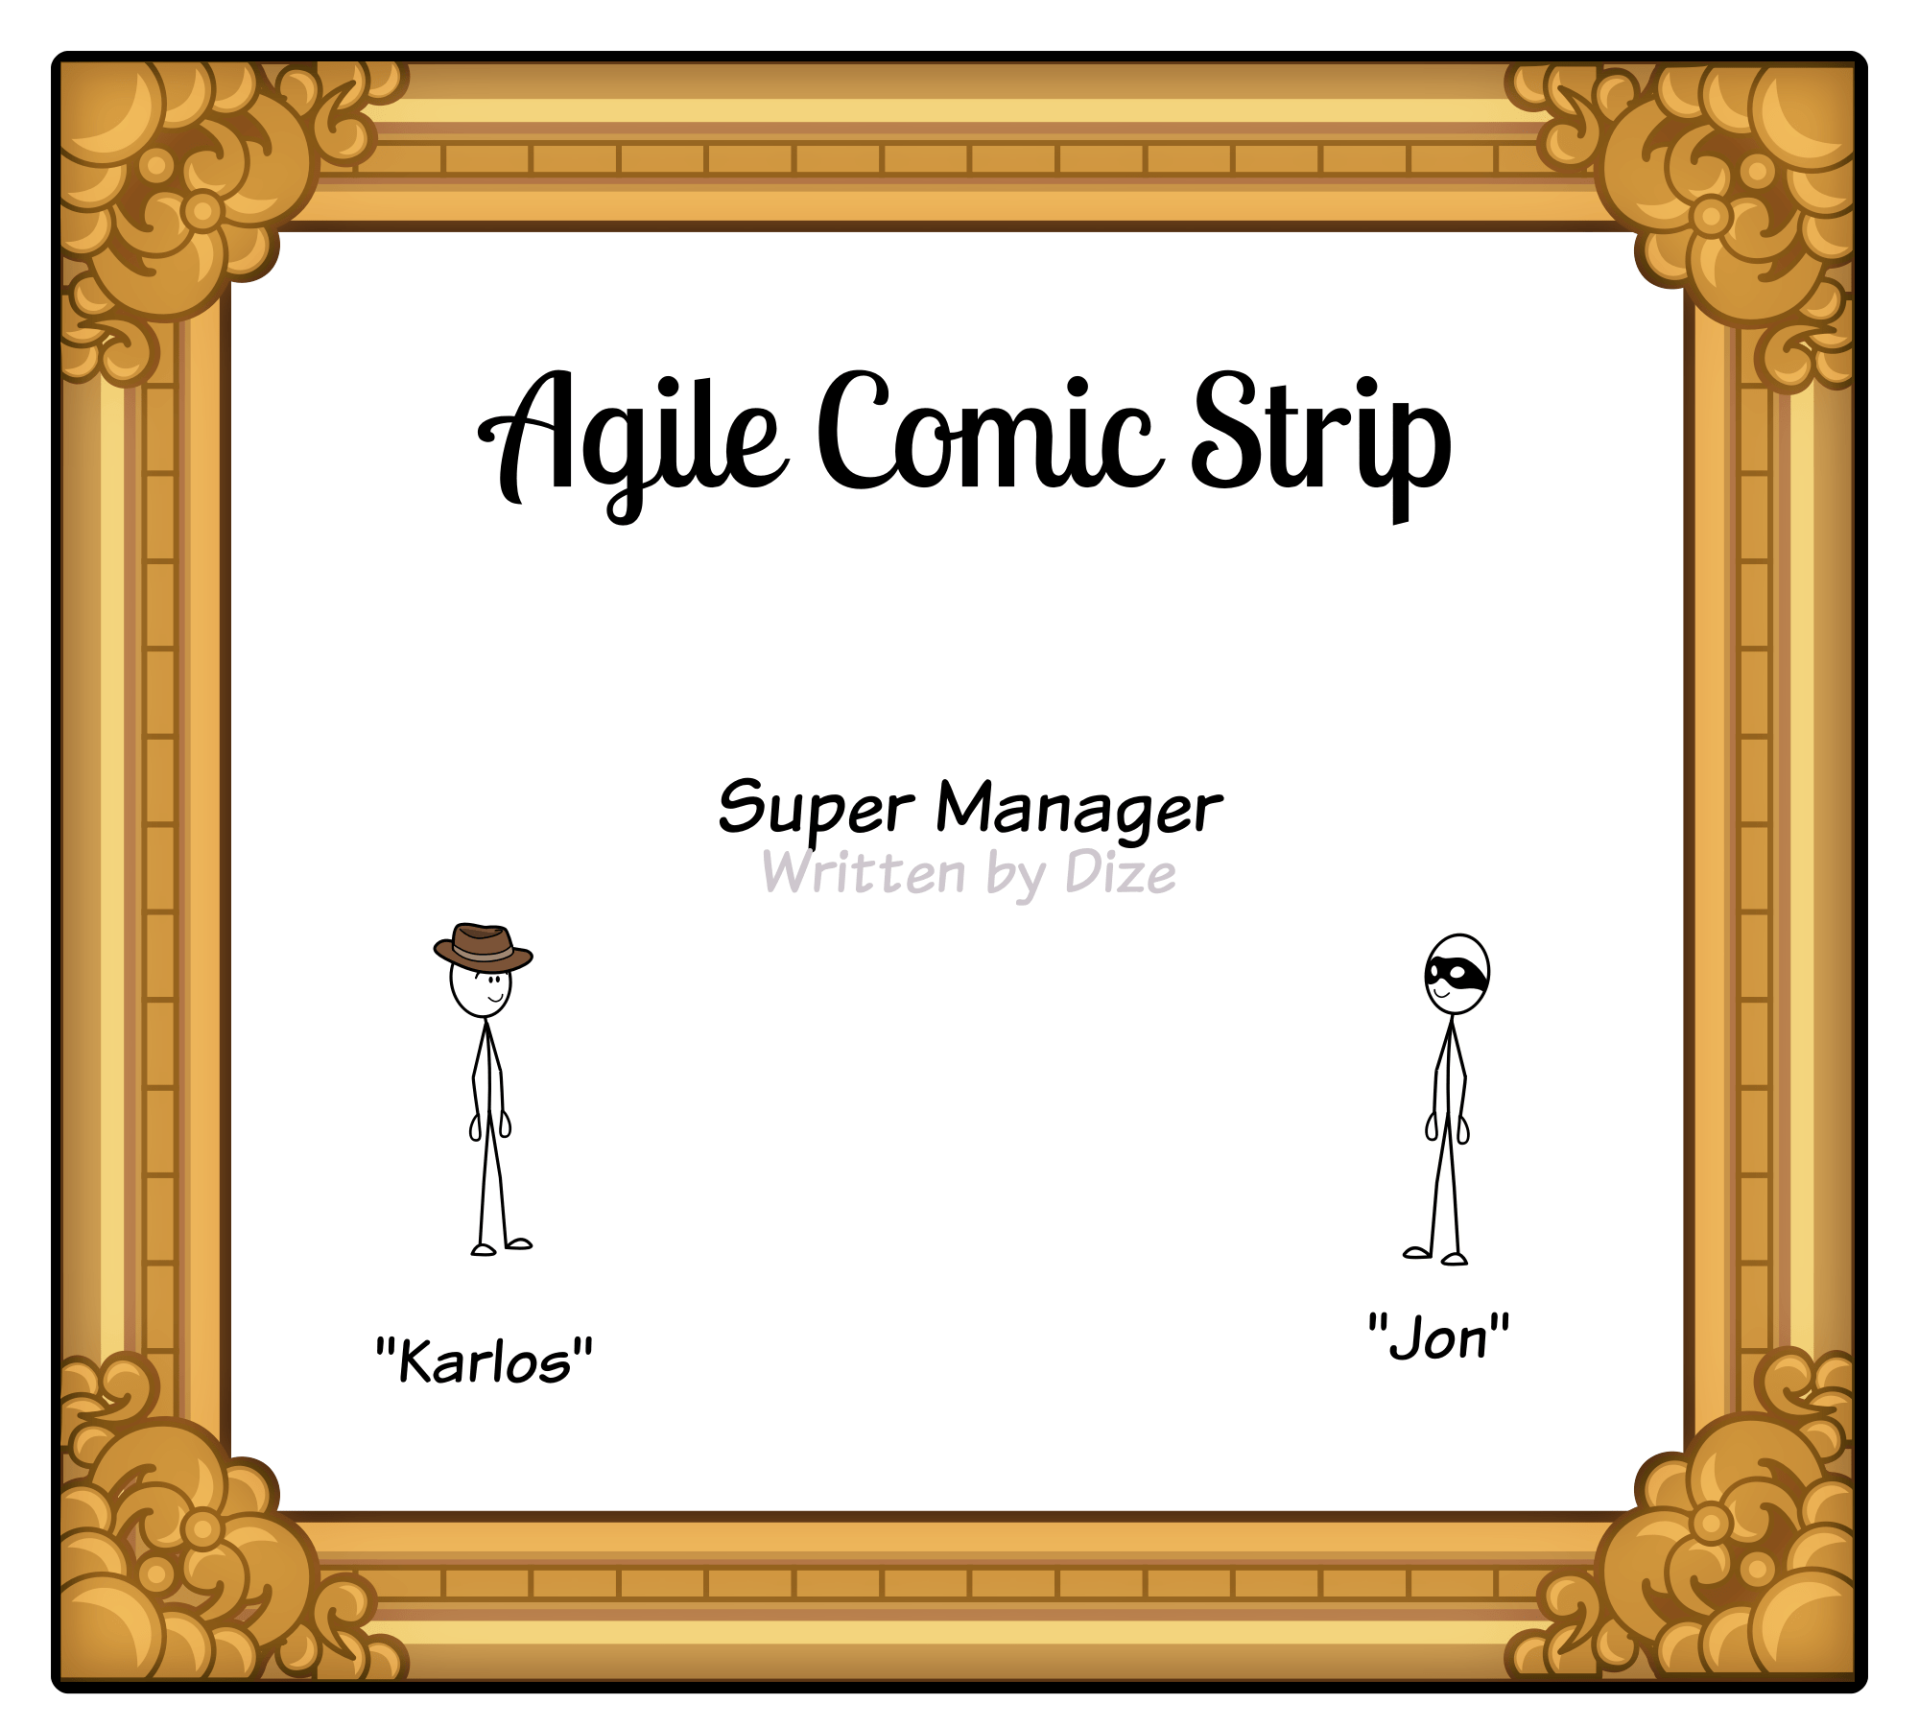 super manager title